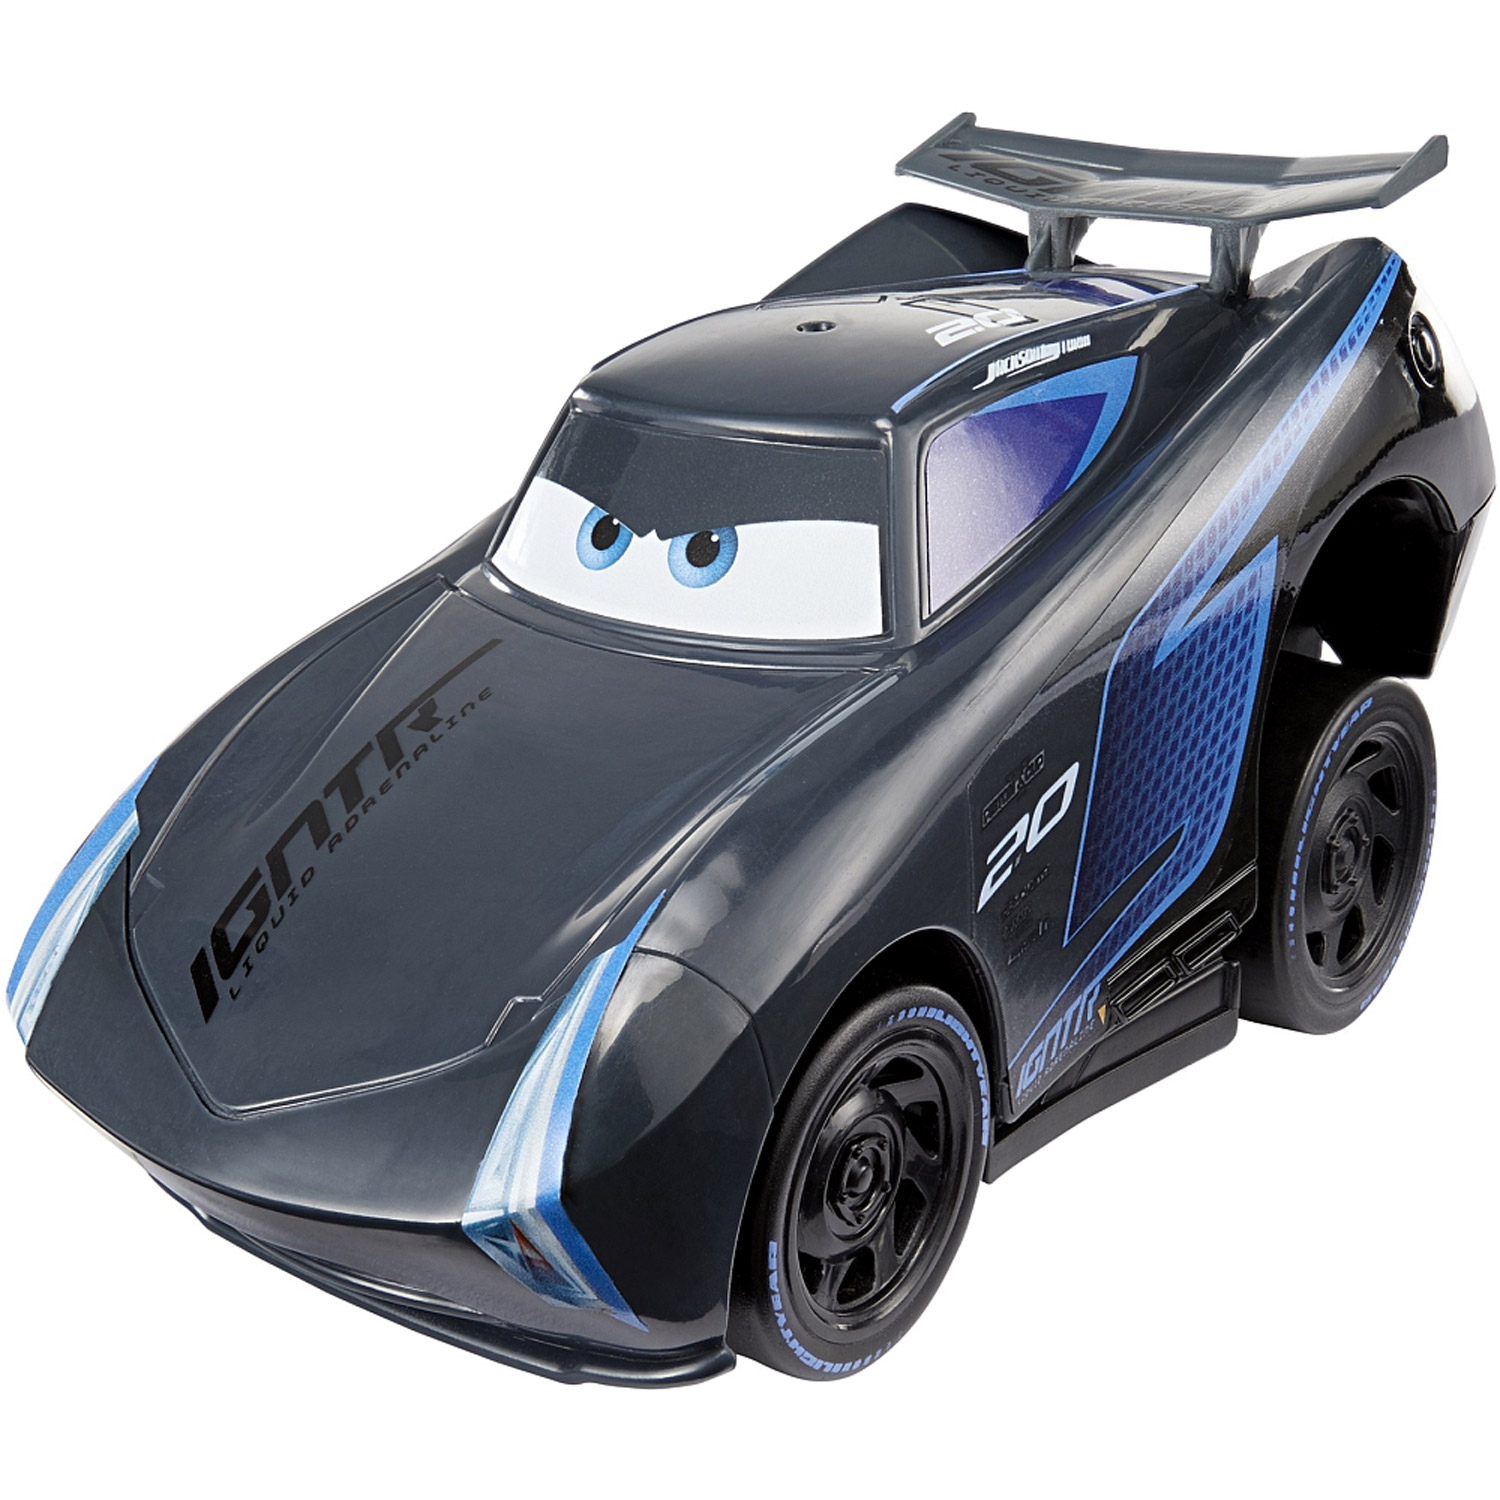 Cars 3 Jackson Storm Jouet Voiture Press Go Cars 3 Jackson Storm